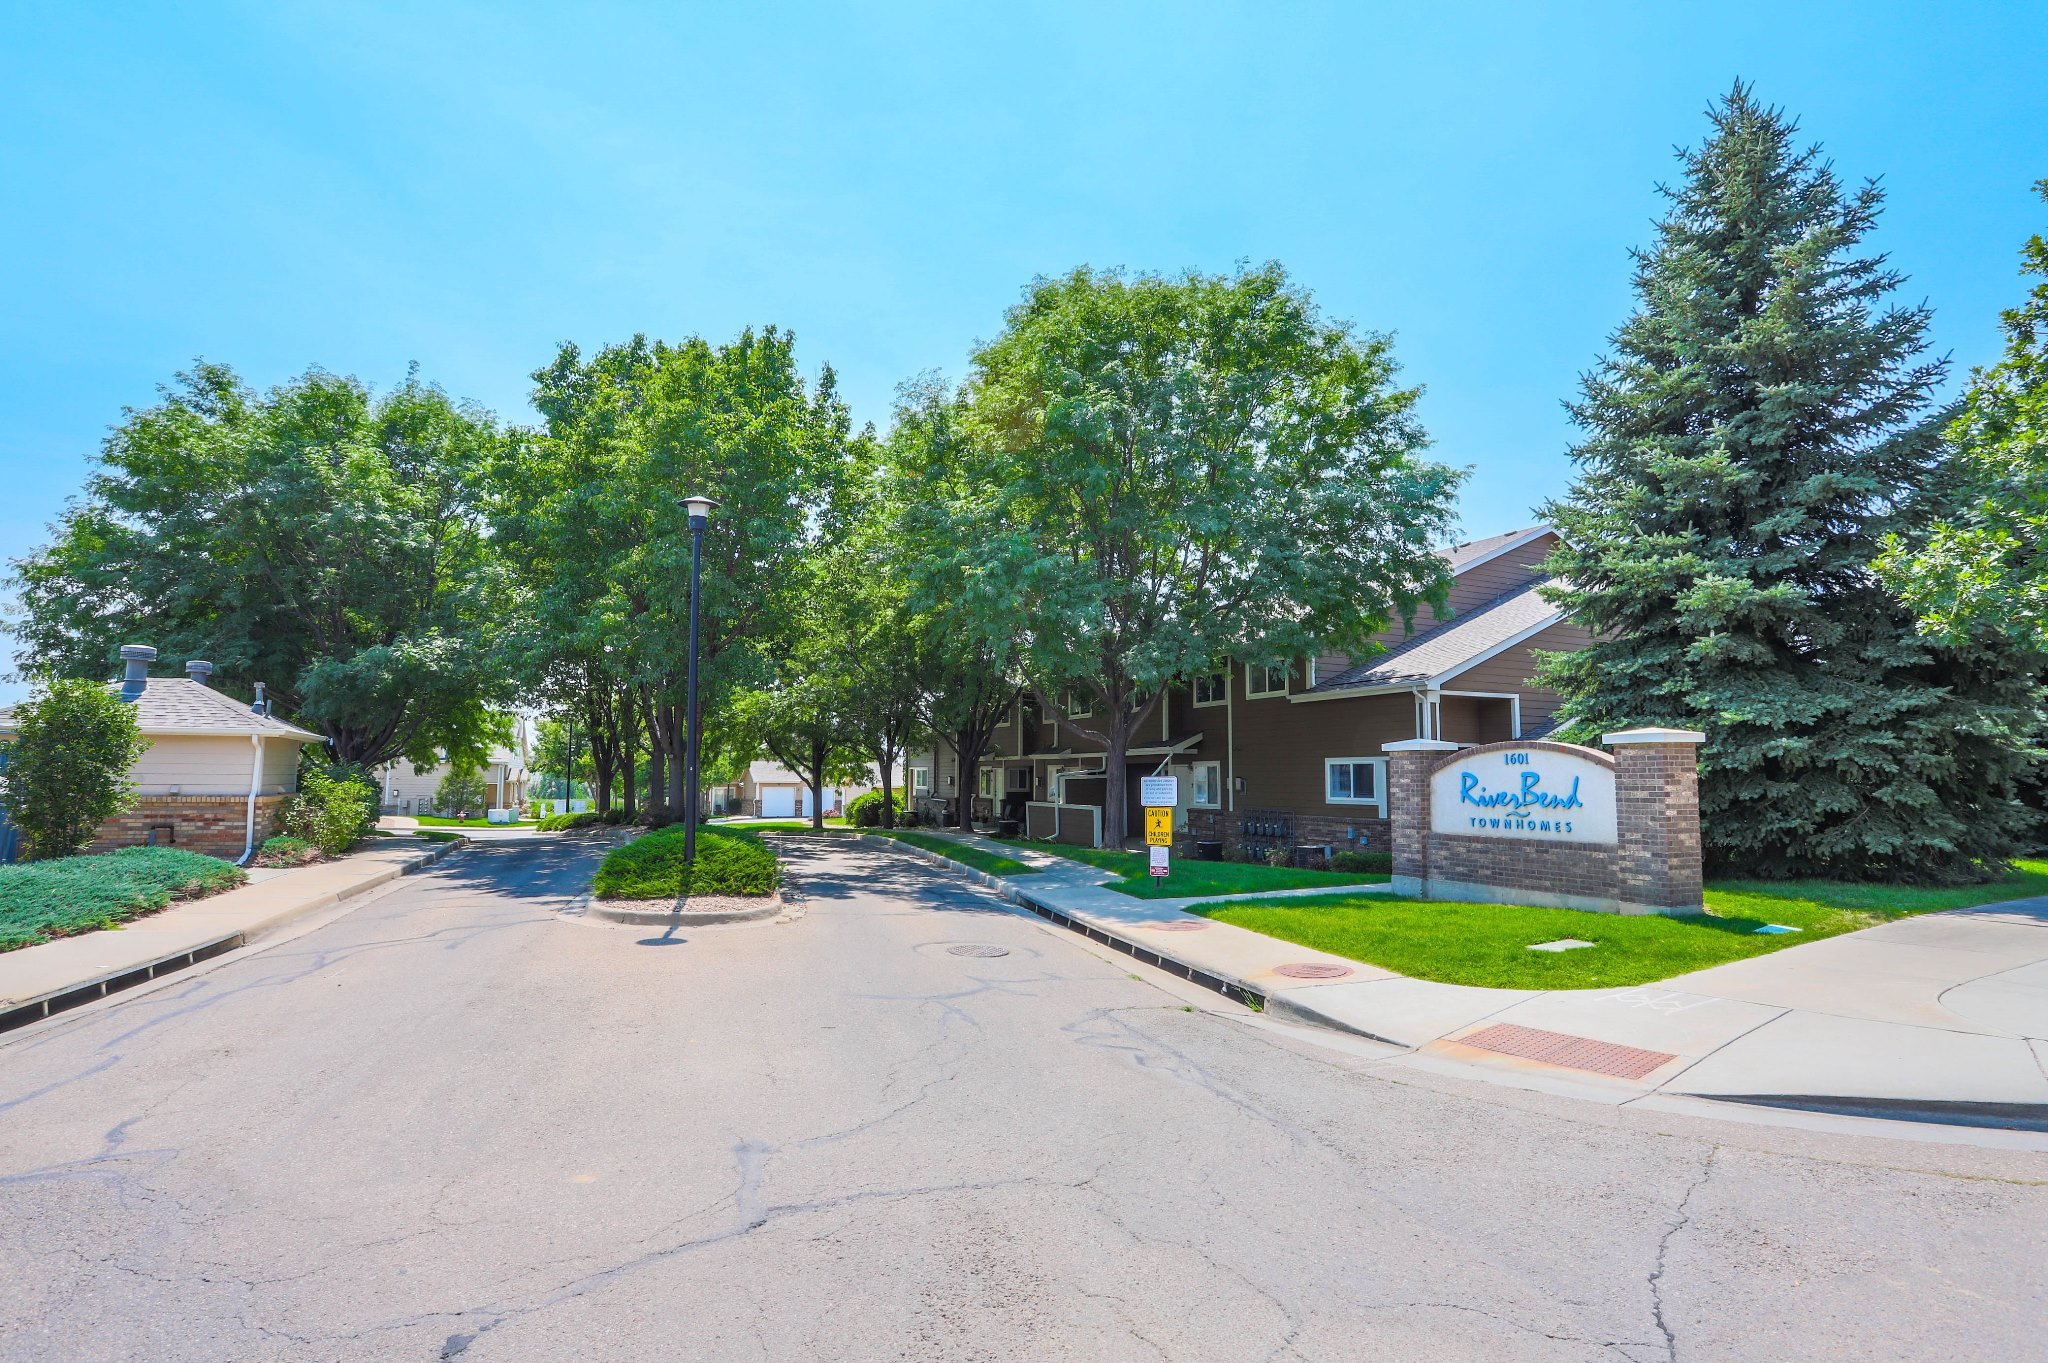 REAL ESTATE LISTING: 1601 Great Western Dr Longmont Riverbend Community